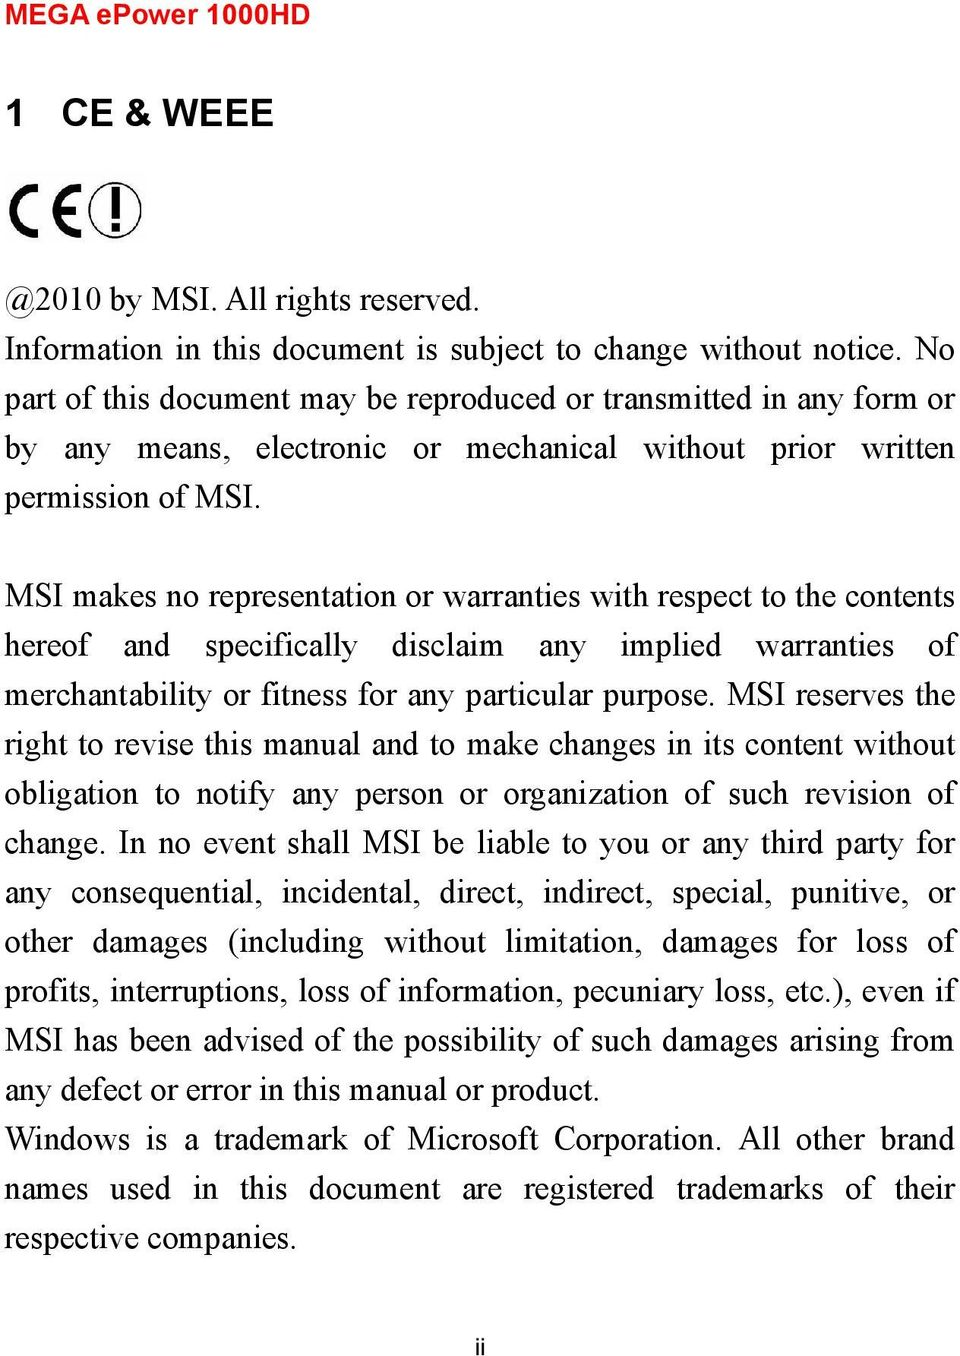 MSI makes no representation or warranties with respect to the contents hereof and specifically disclaim any implied warranties of merchantability or fitness for any particular purpose.